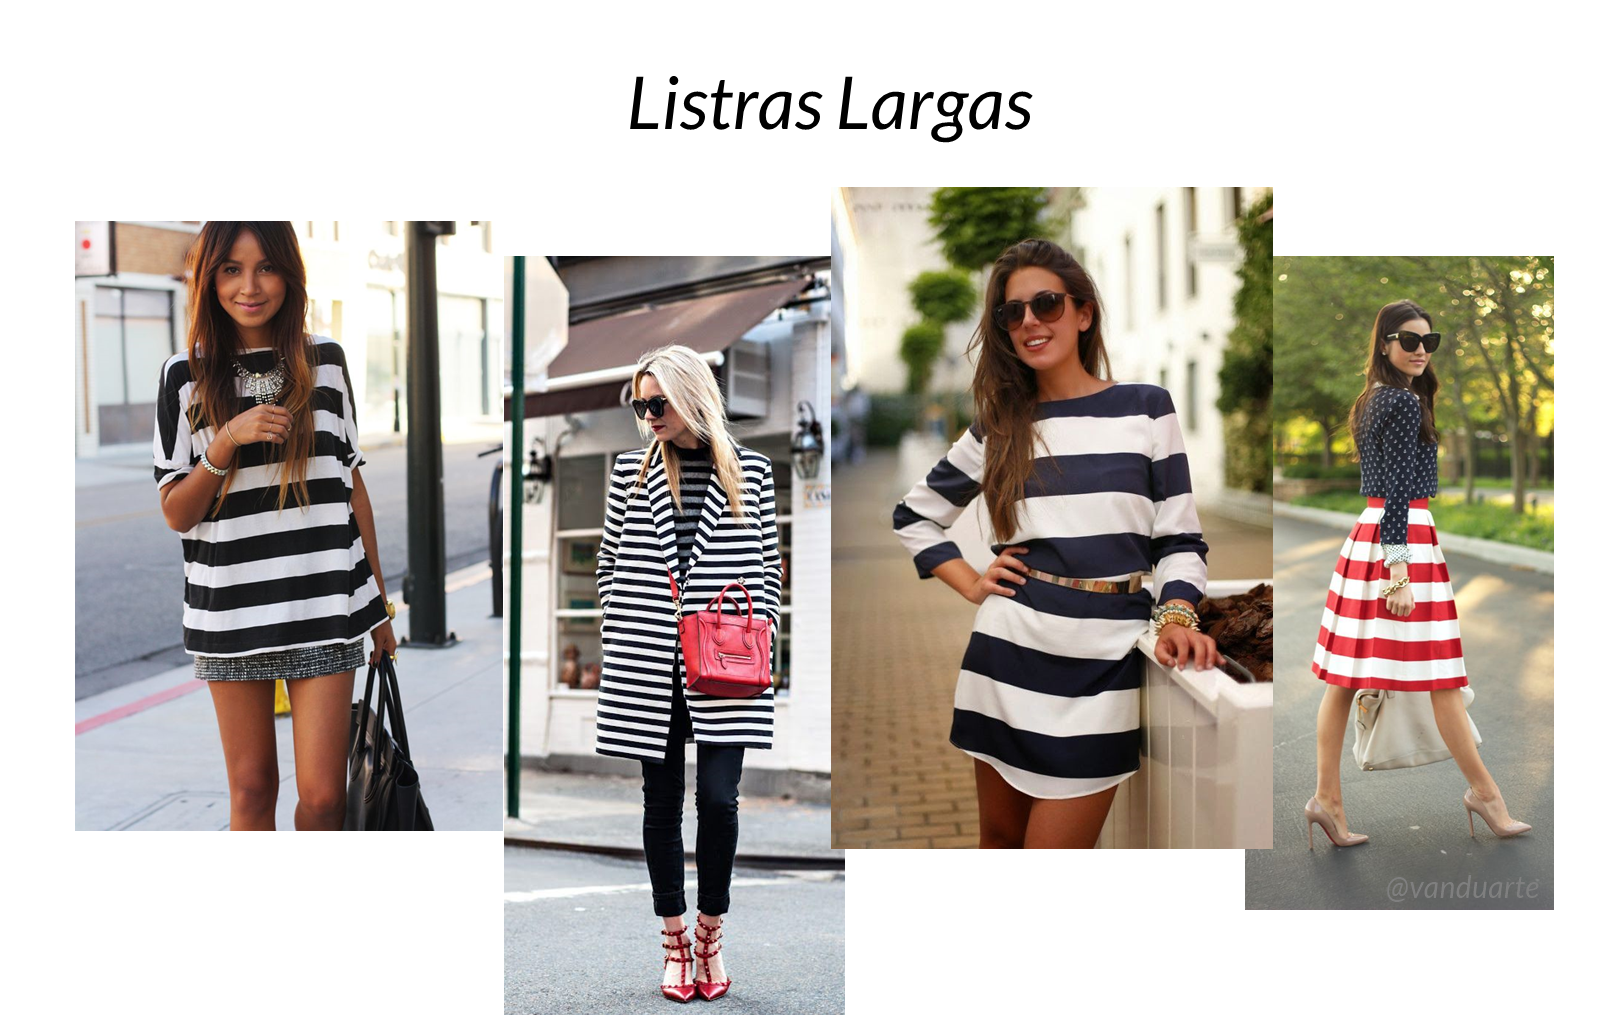 post-linhas-horizontais-blog-vanduarte-strippes-outfit-2